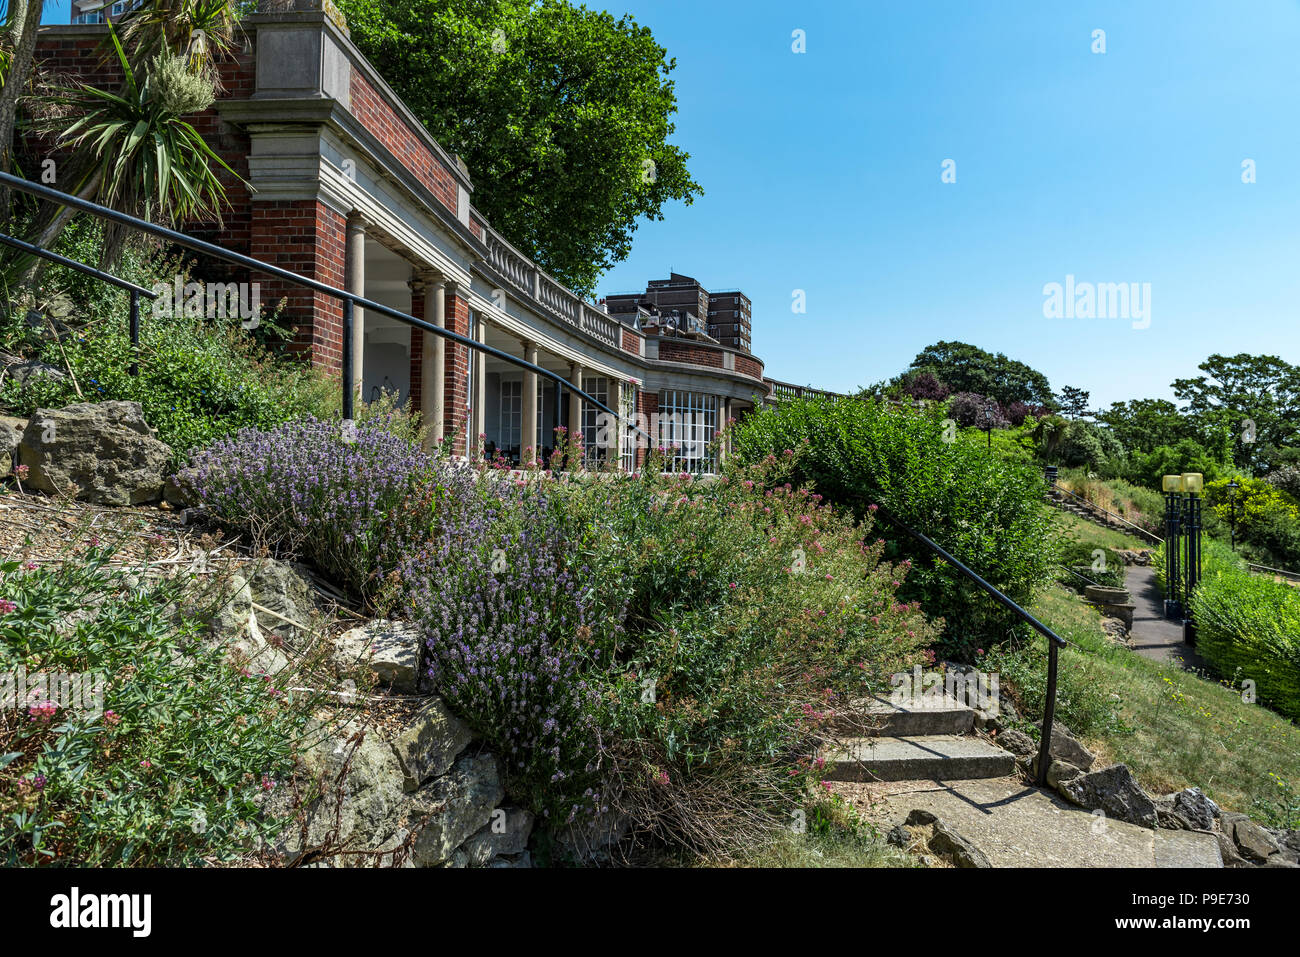 Large curved shelter in Southend on sea's Cliff Gardens,Situated beneath the Westcliff Hotel. - Stock Image